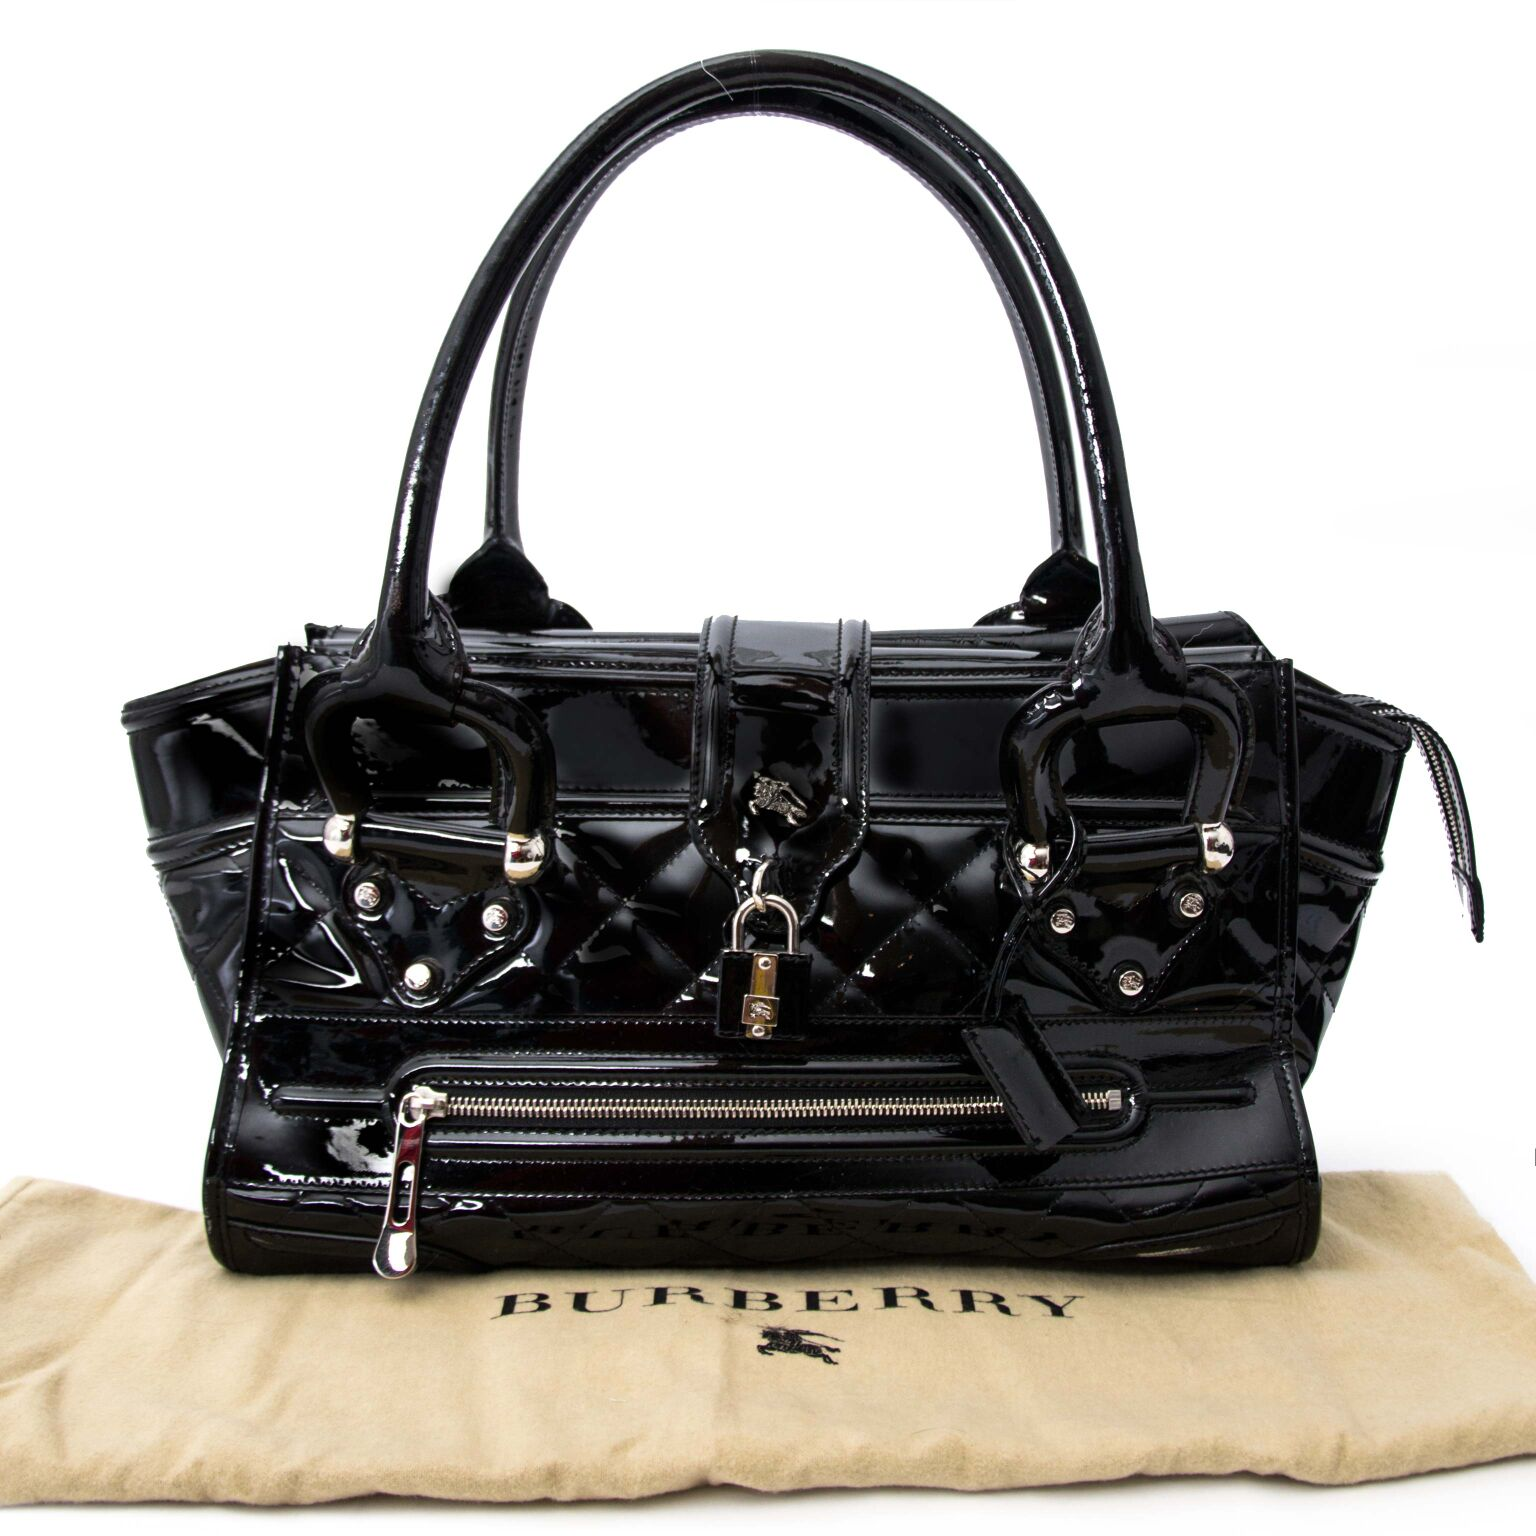 Beautiful unique black patent leather bag from Burberry